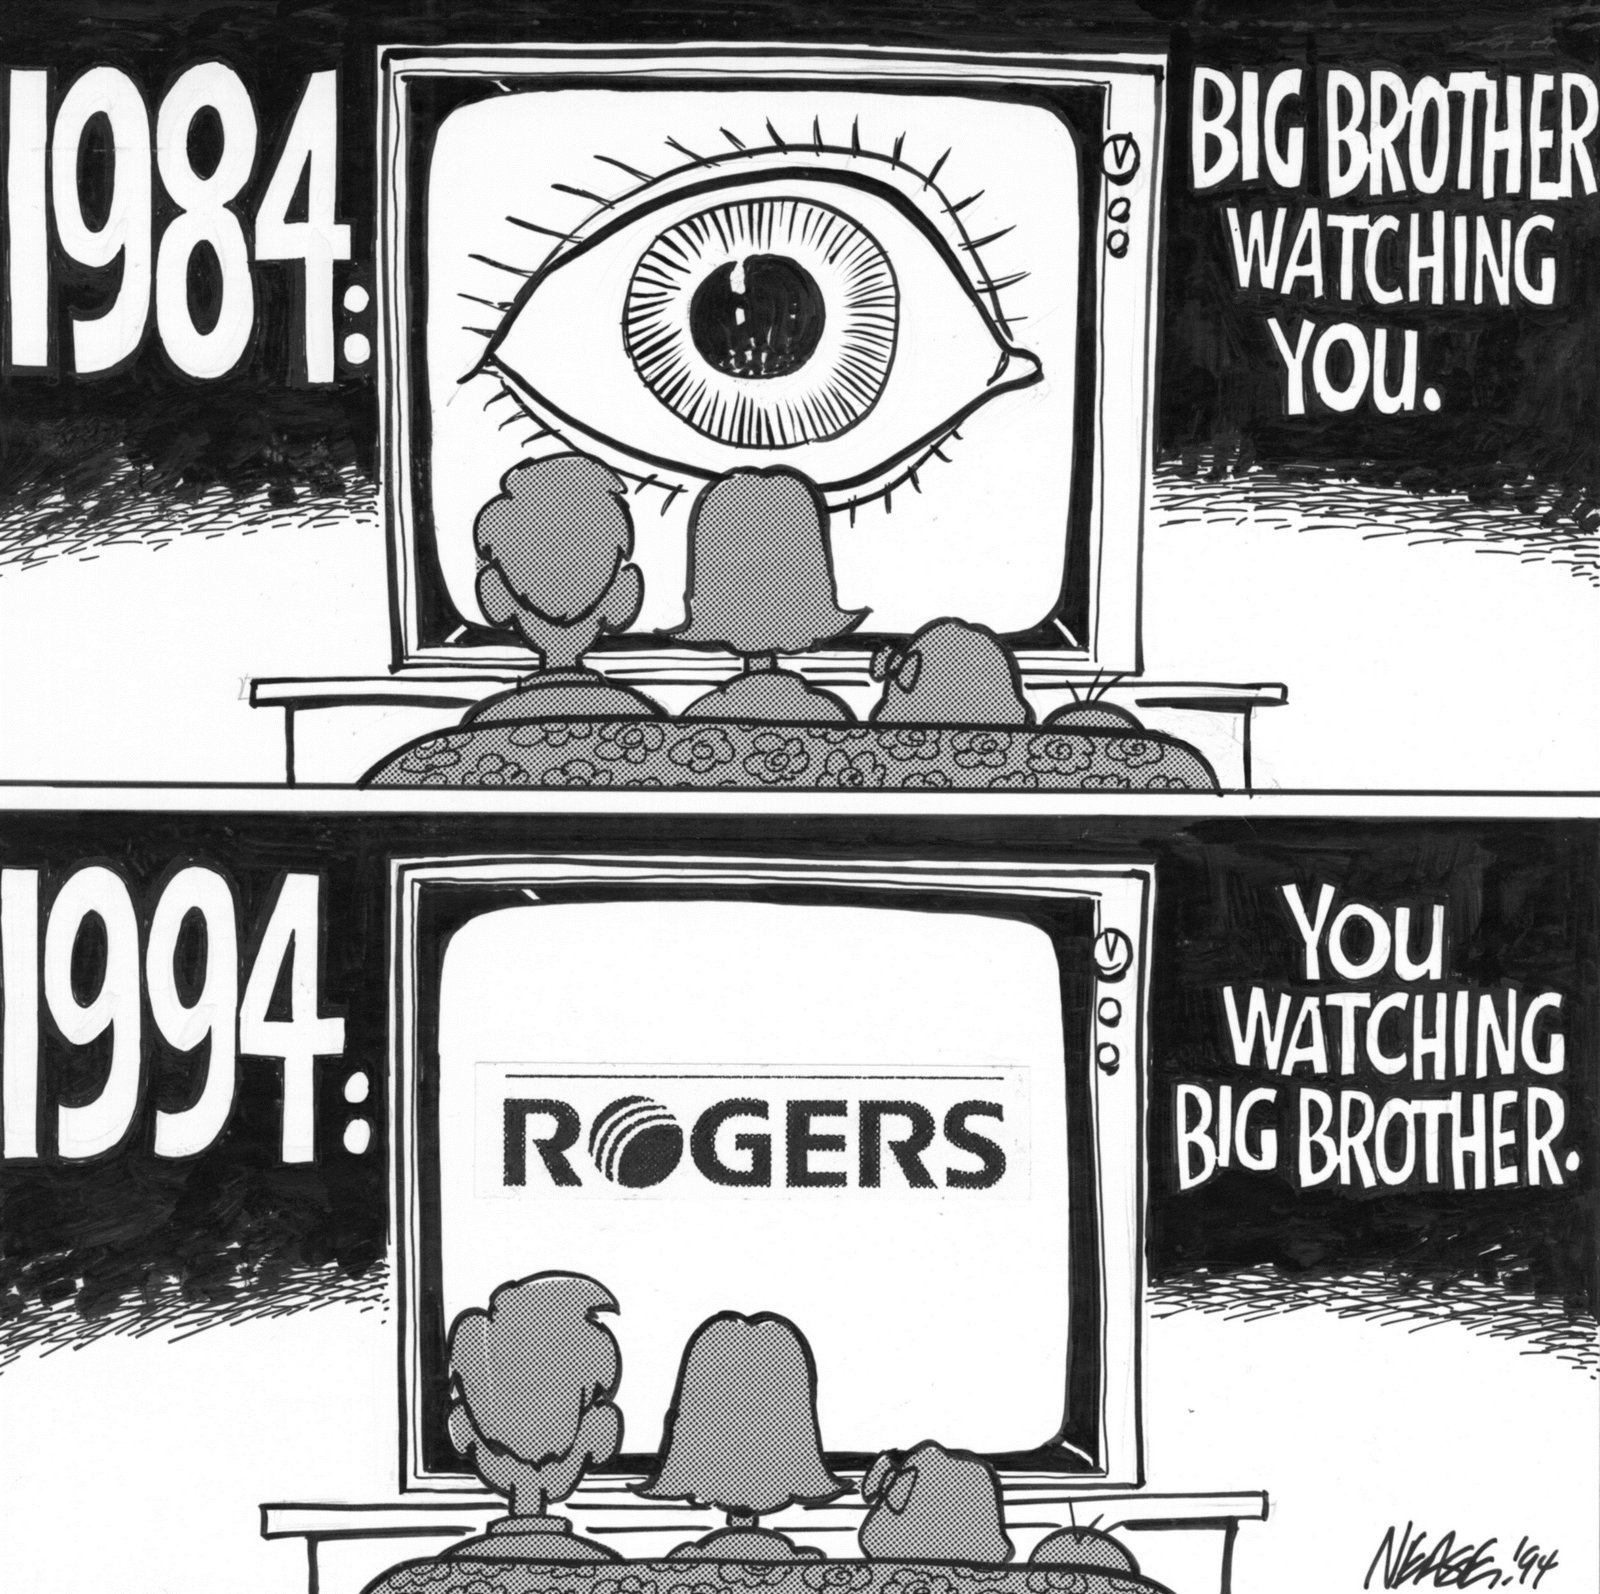 big brother is watching you Big brother is watching you 1984, vintage poster is printed with premium inks for brilliant color and then hand-stretched over museum quality stretcher bars 60-day money back guarantee and free return shipping.